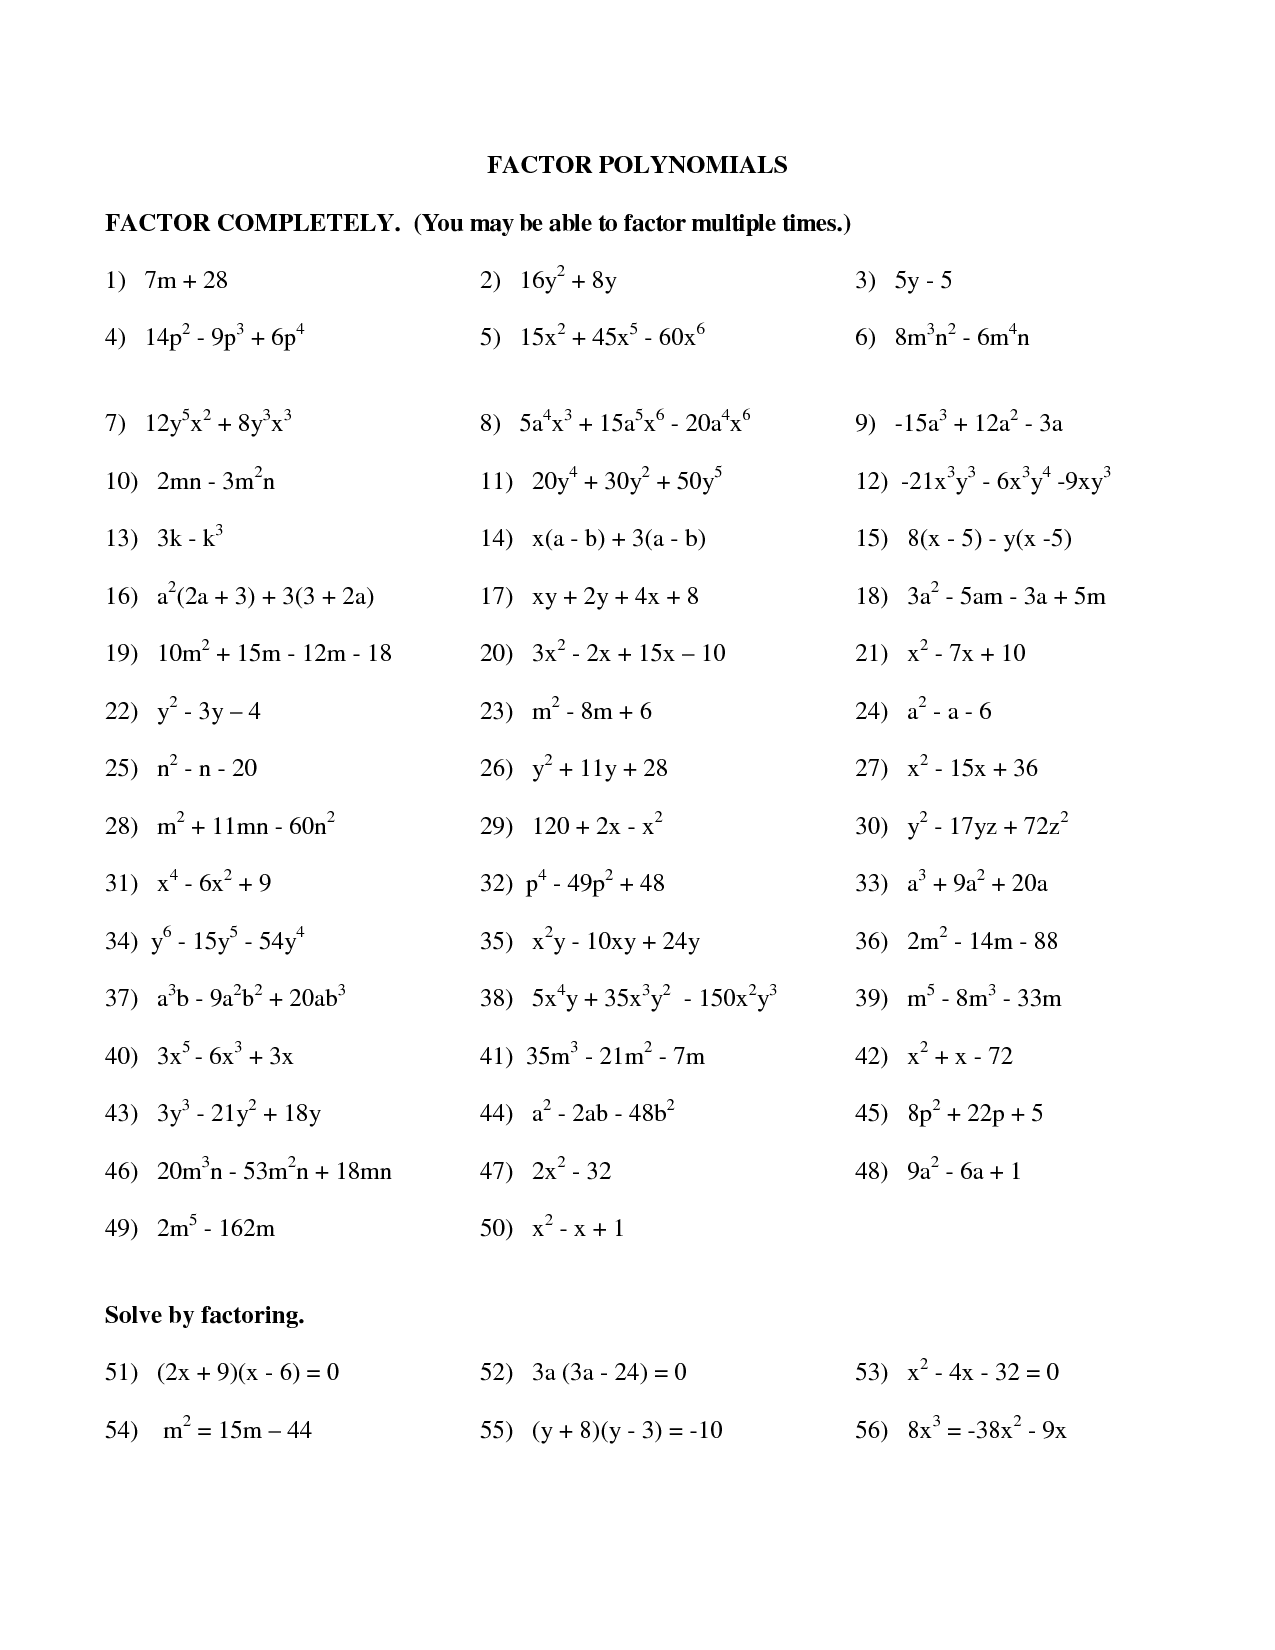 worksheet Factorising Linear Expressions Worksheet beautiful factoring linear expressions worksheet images stunning worksheets photos worksheet